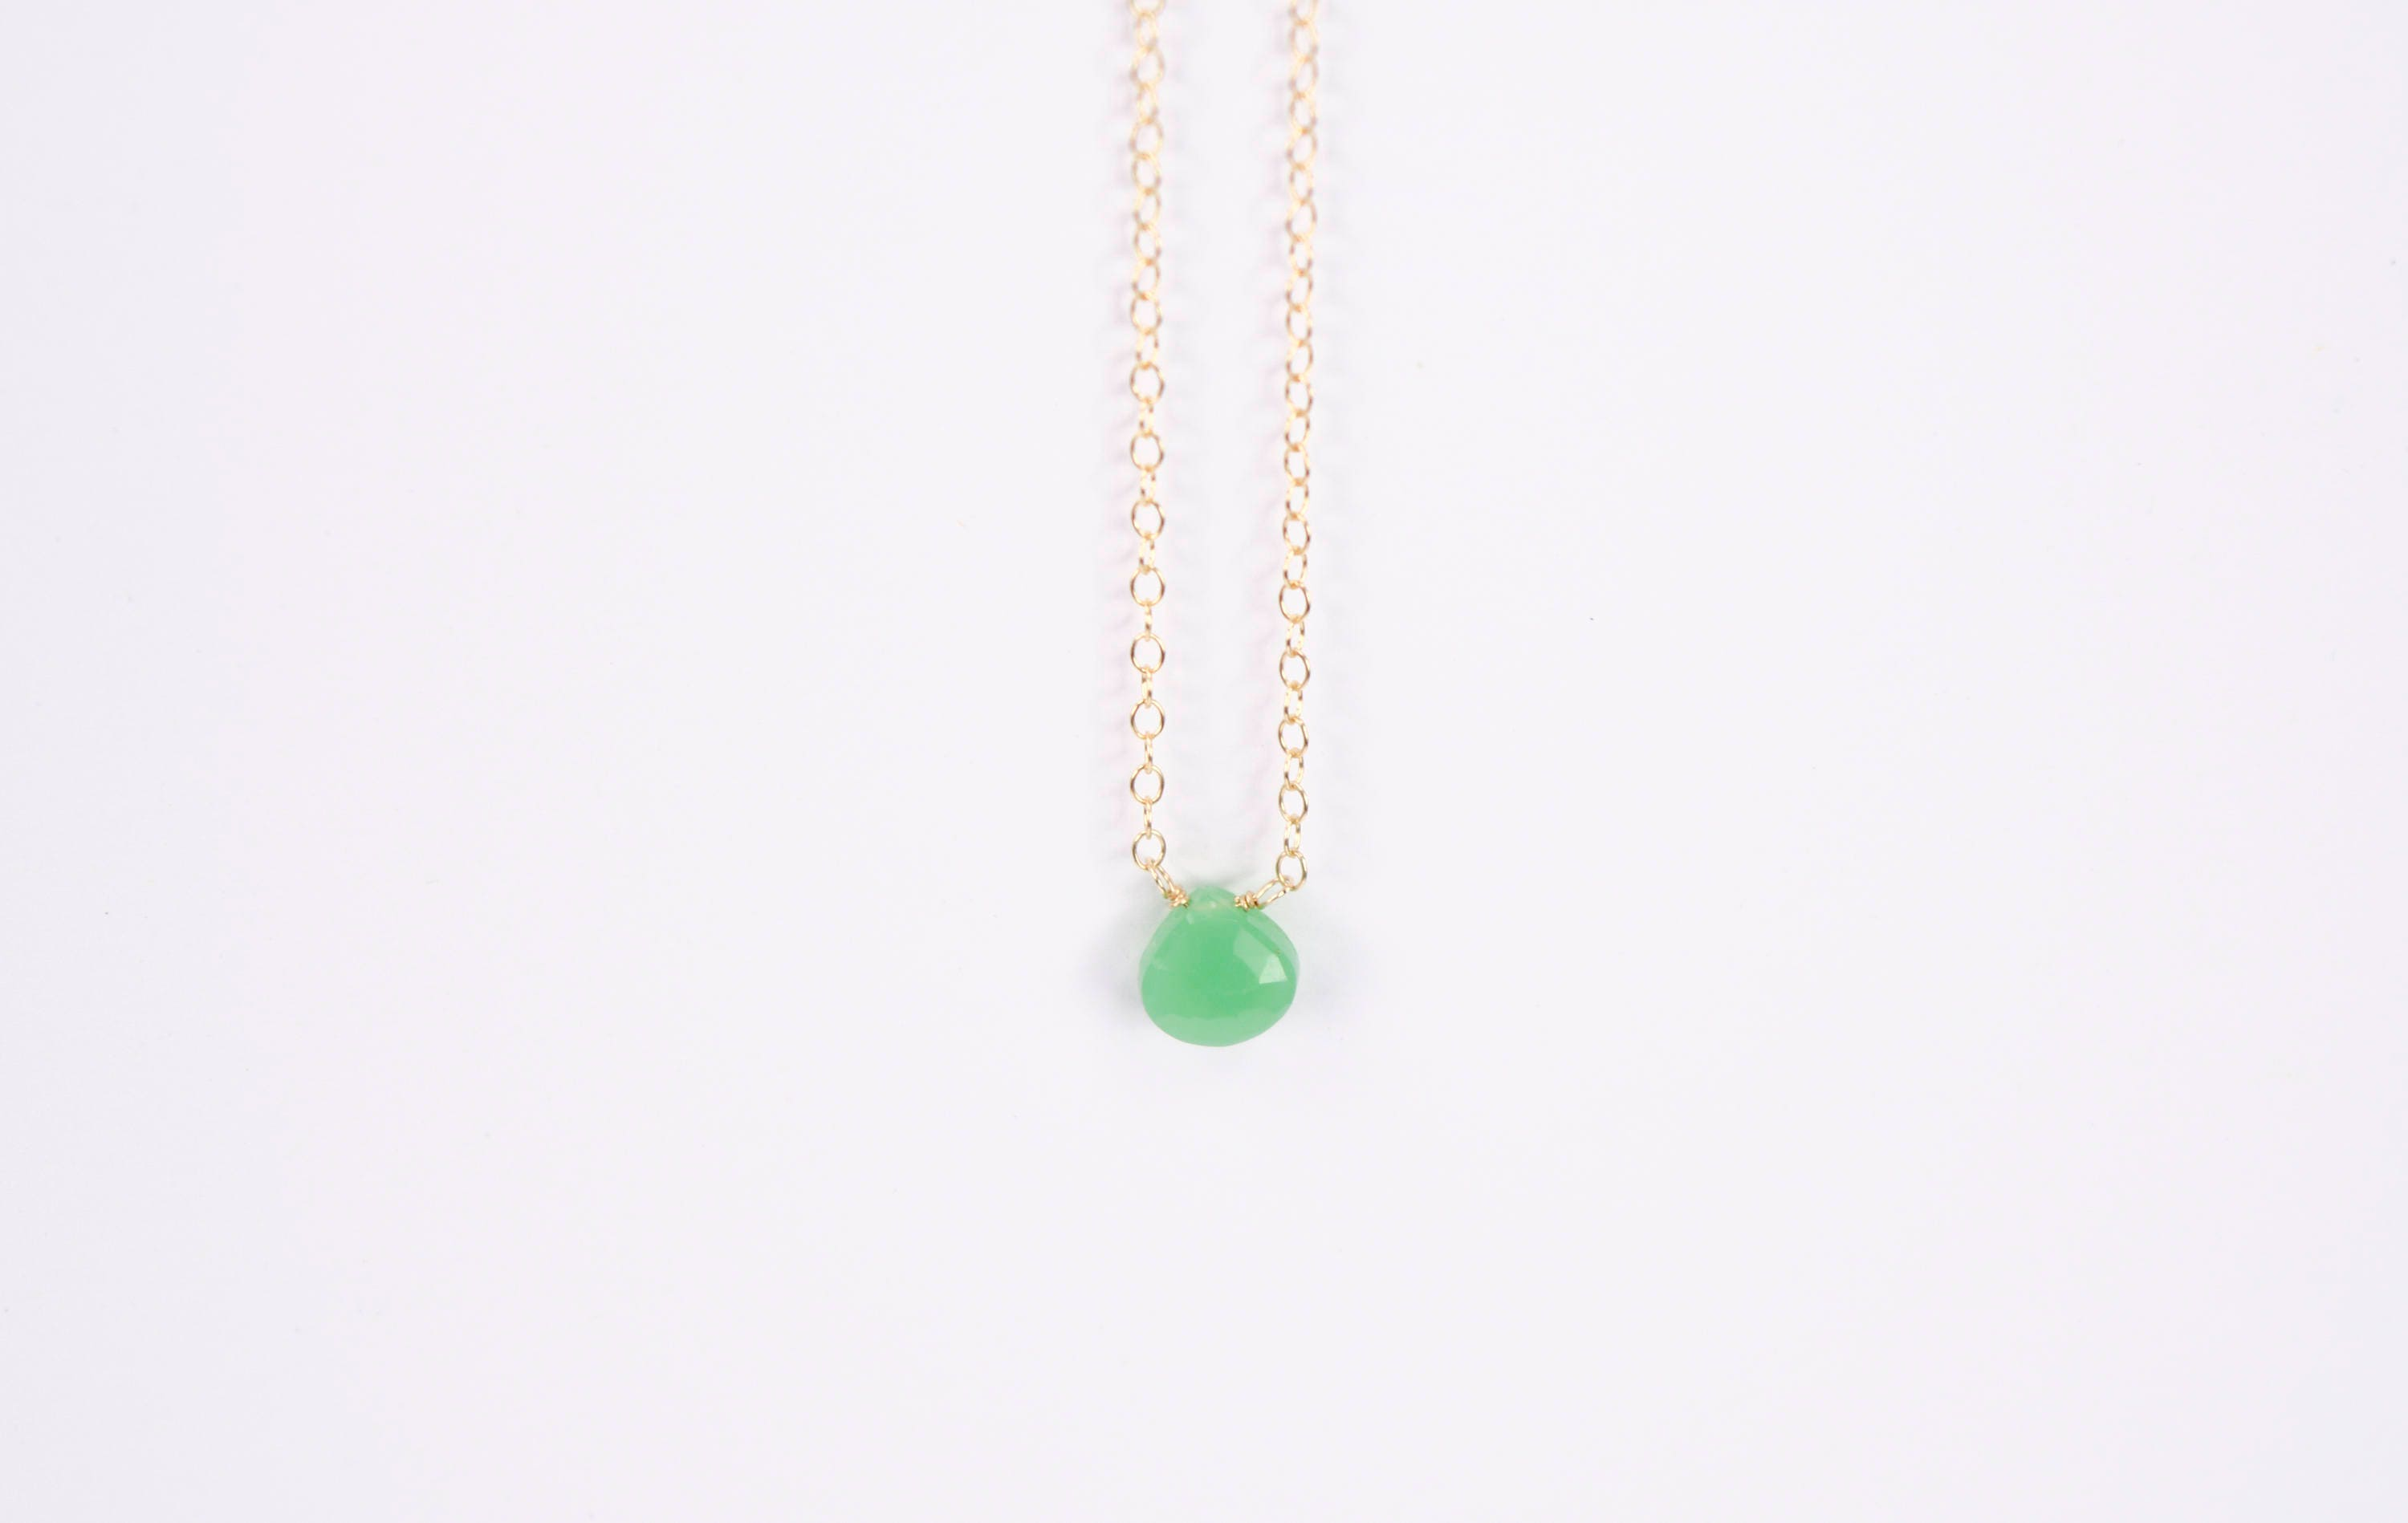 amours internationales chrysoprase corfu collier necklace accueil en